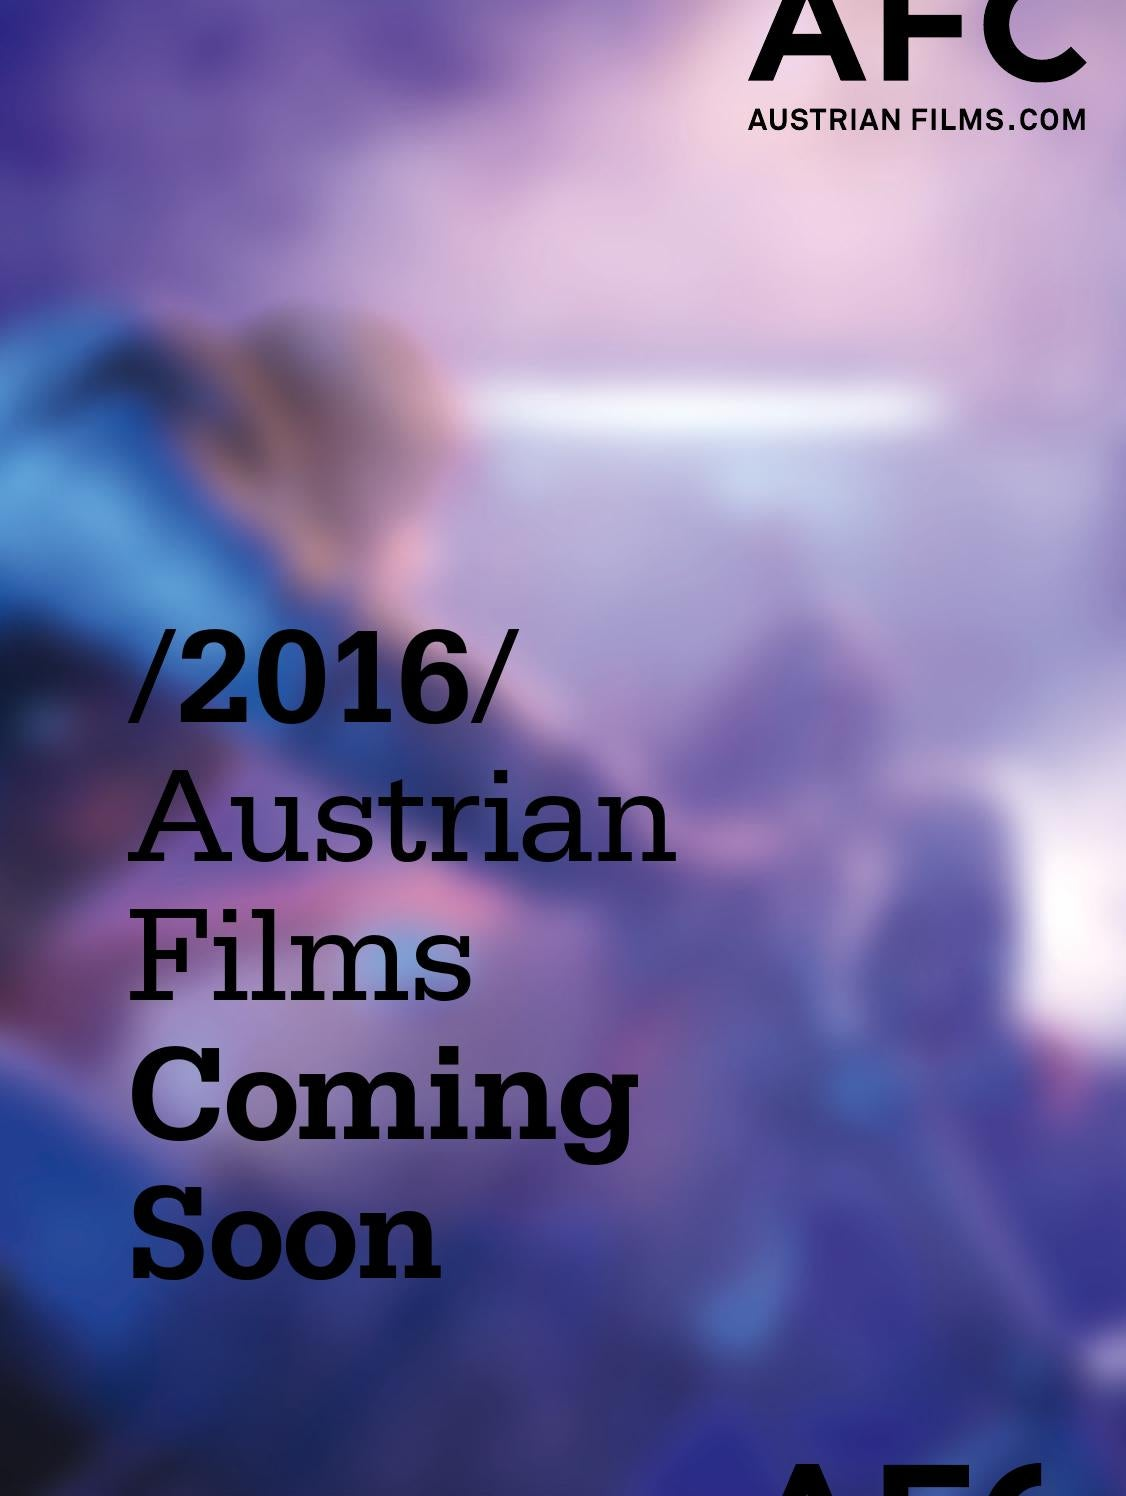 Angela Gregovic Nude austrian films coming soon 2016austrian film commission